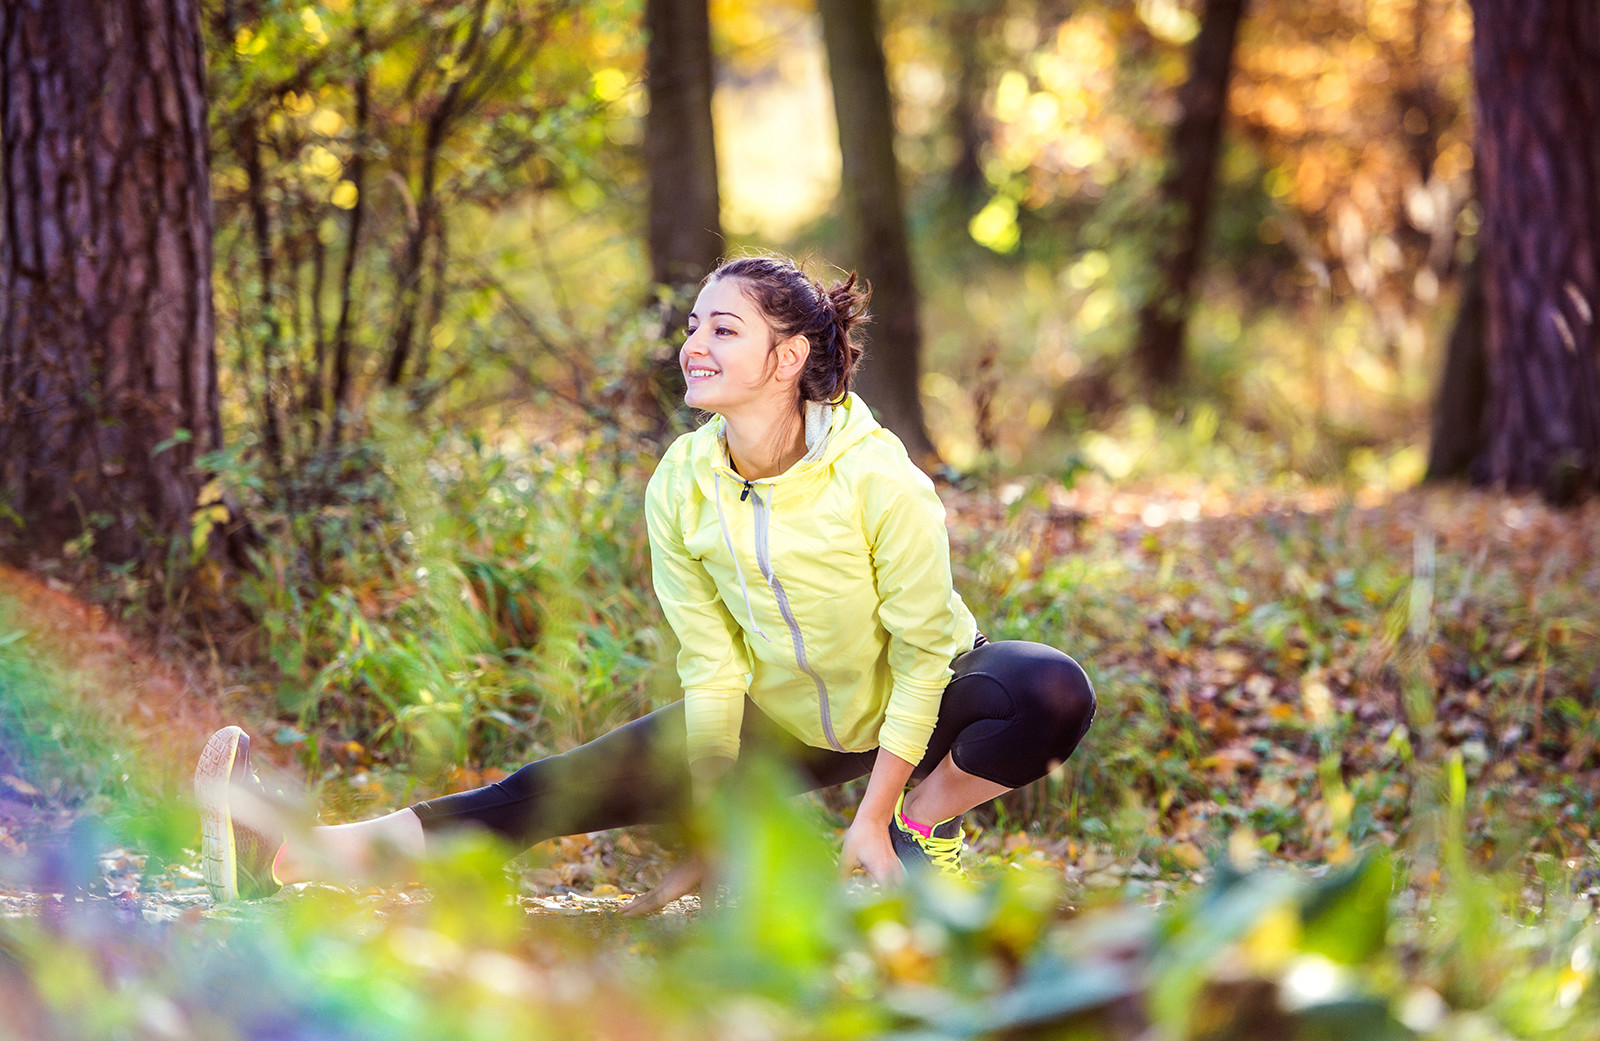 A young smiley woman stretching in the middle of nature.